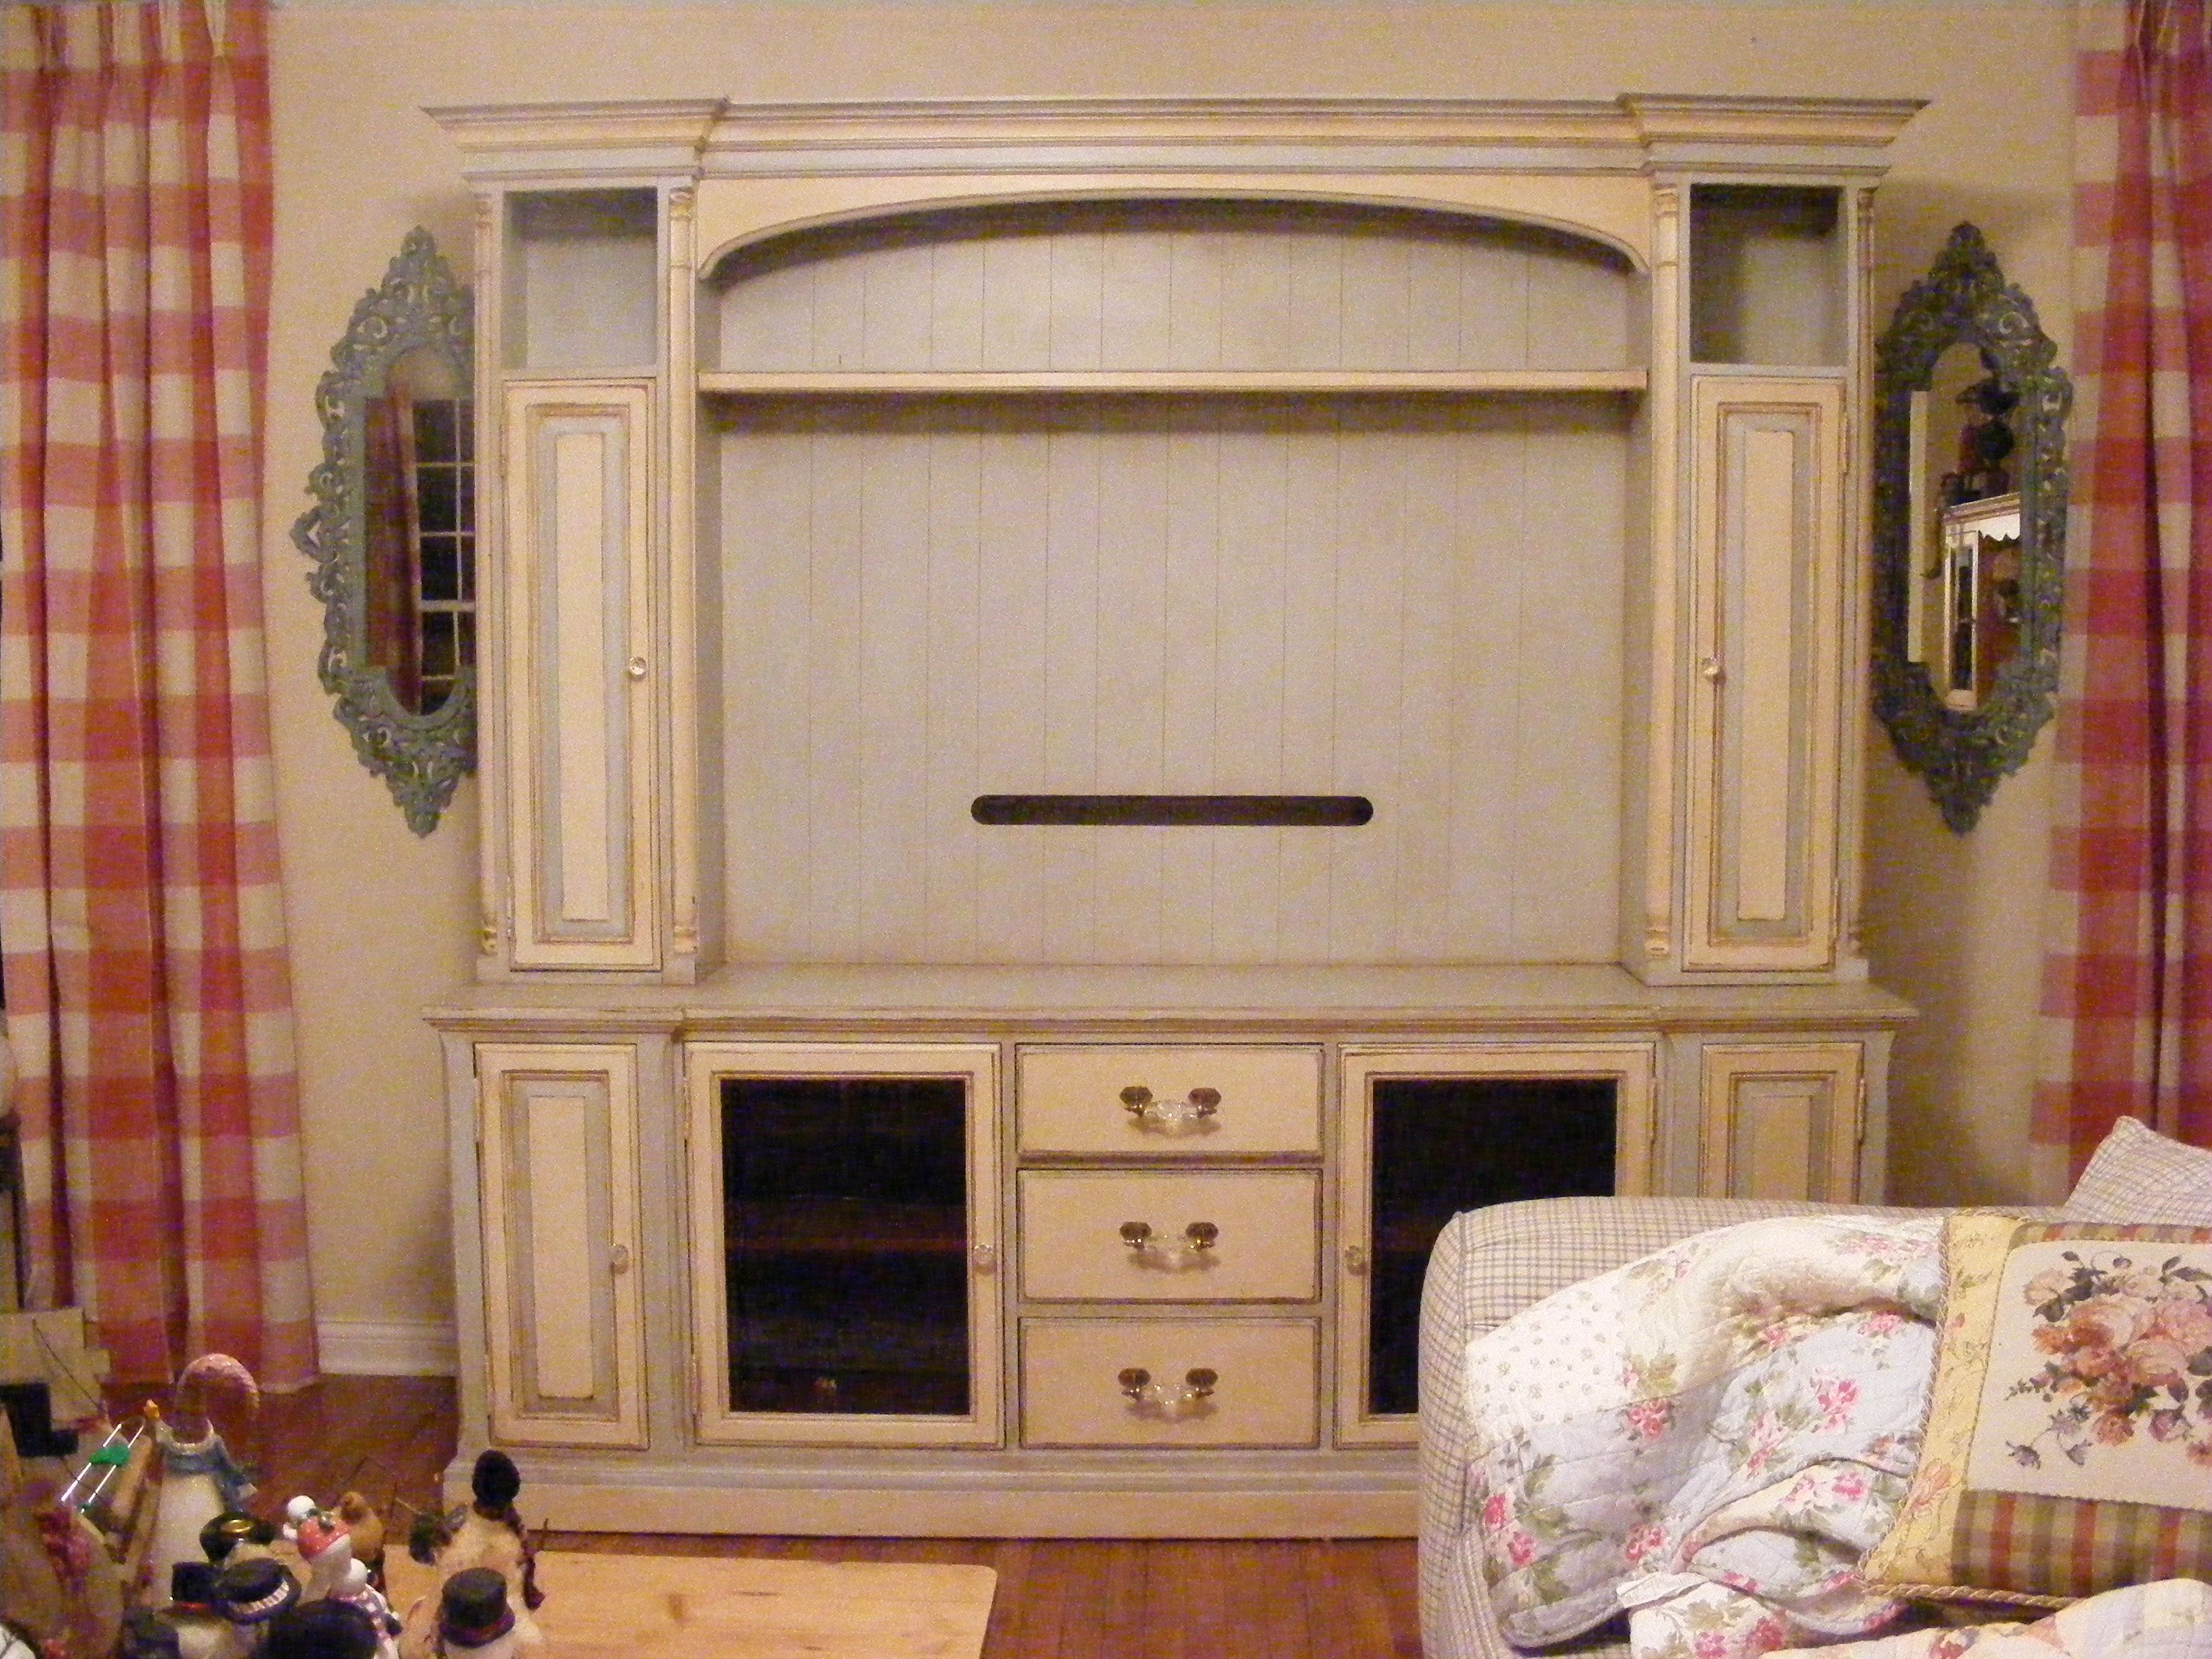 Painted furniture ideas shabby chic - Hand Painted Distressed And Glazed Shabby Chic Entertainment Center